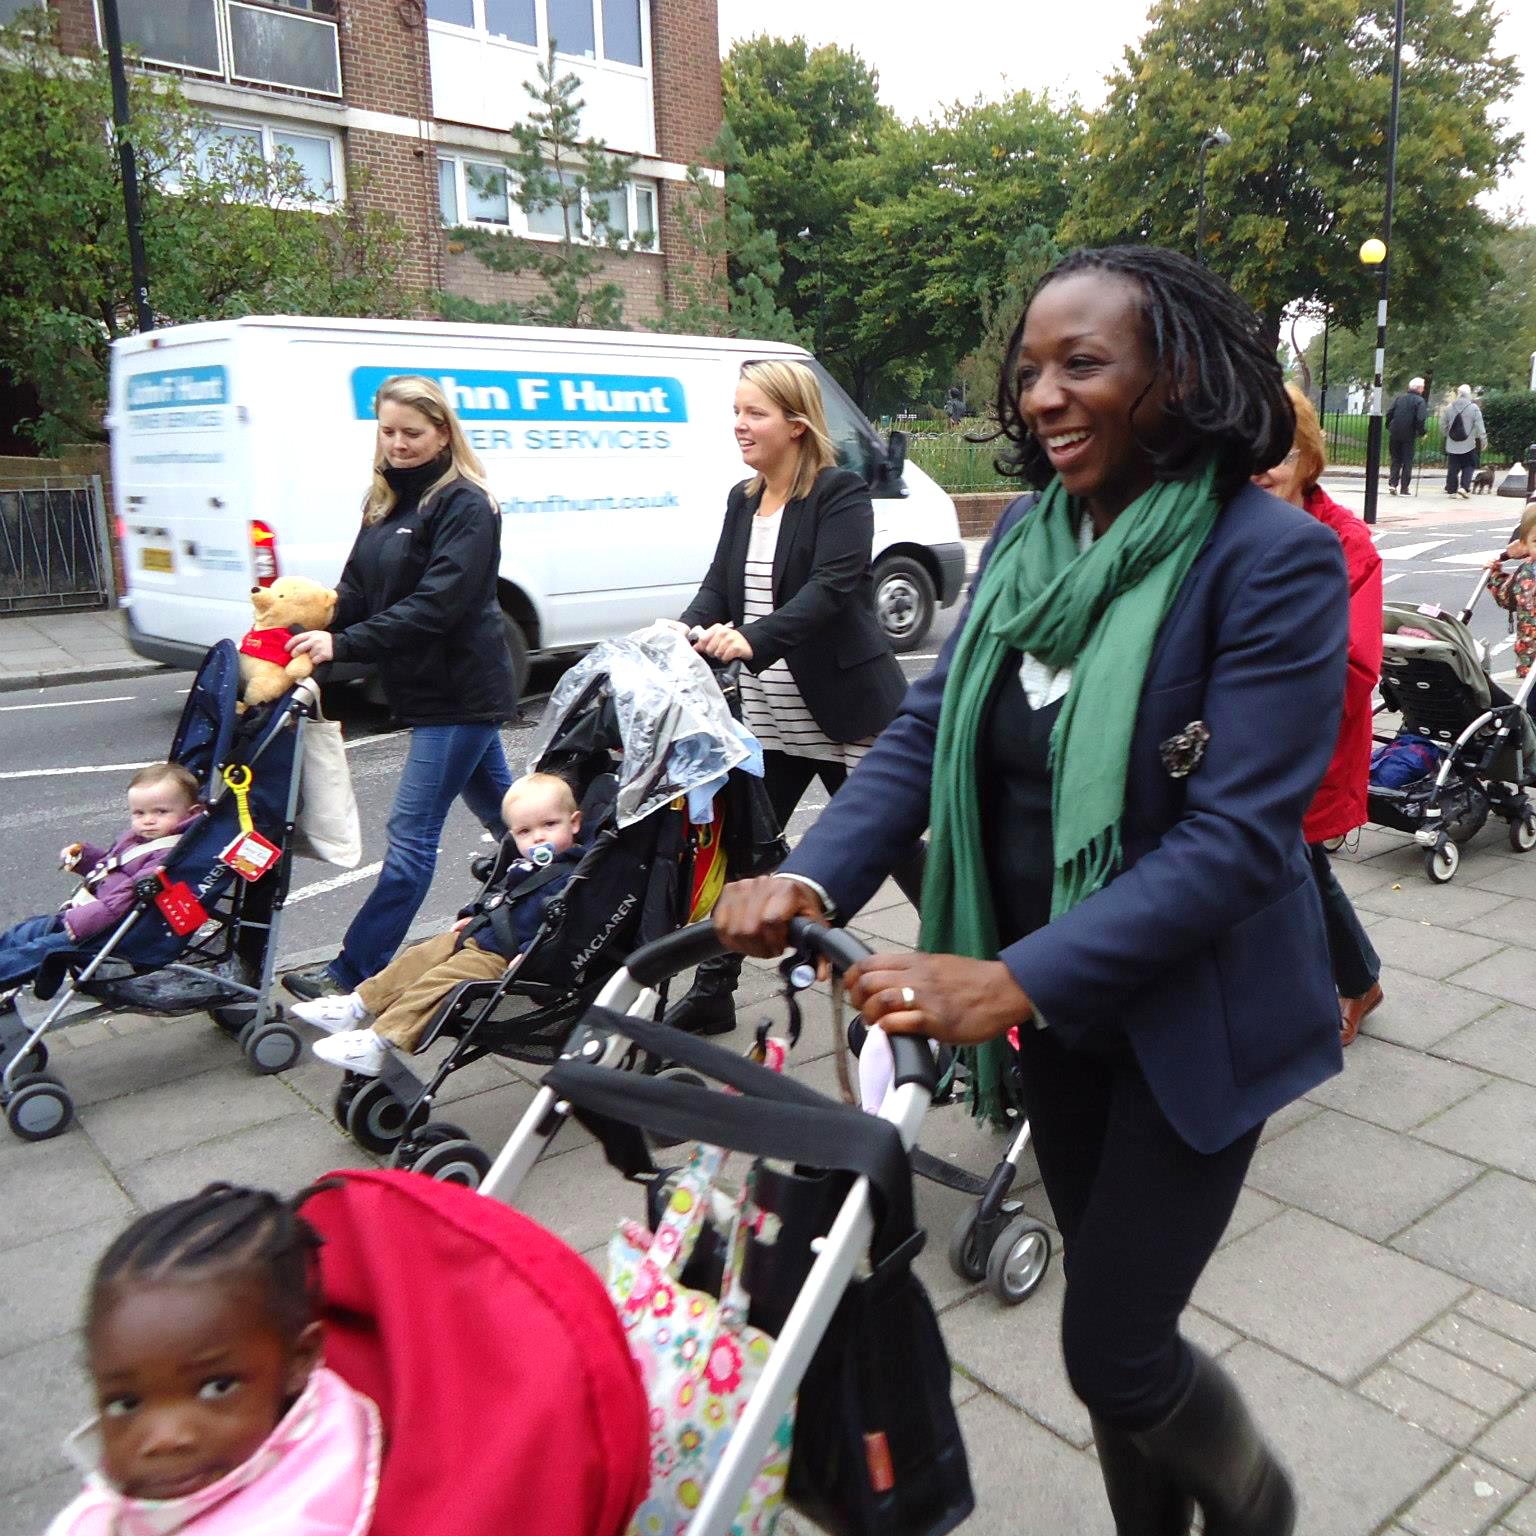 An action shot of several mums pushing buggies down the street on the way to a Firestation visit. They are smiling and laughing together.